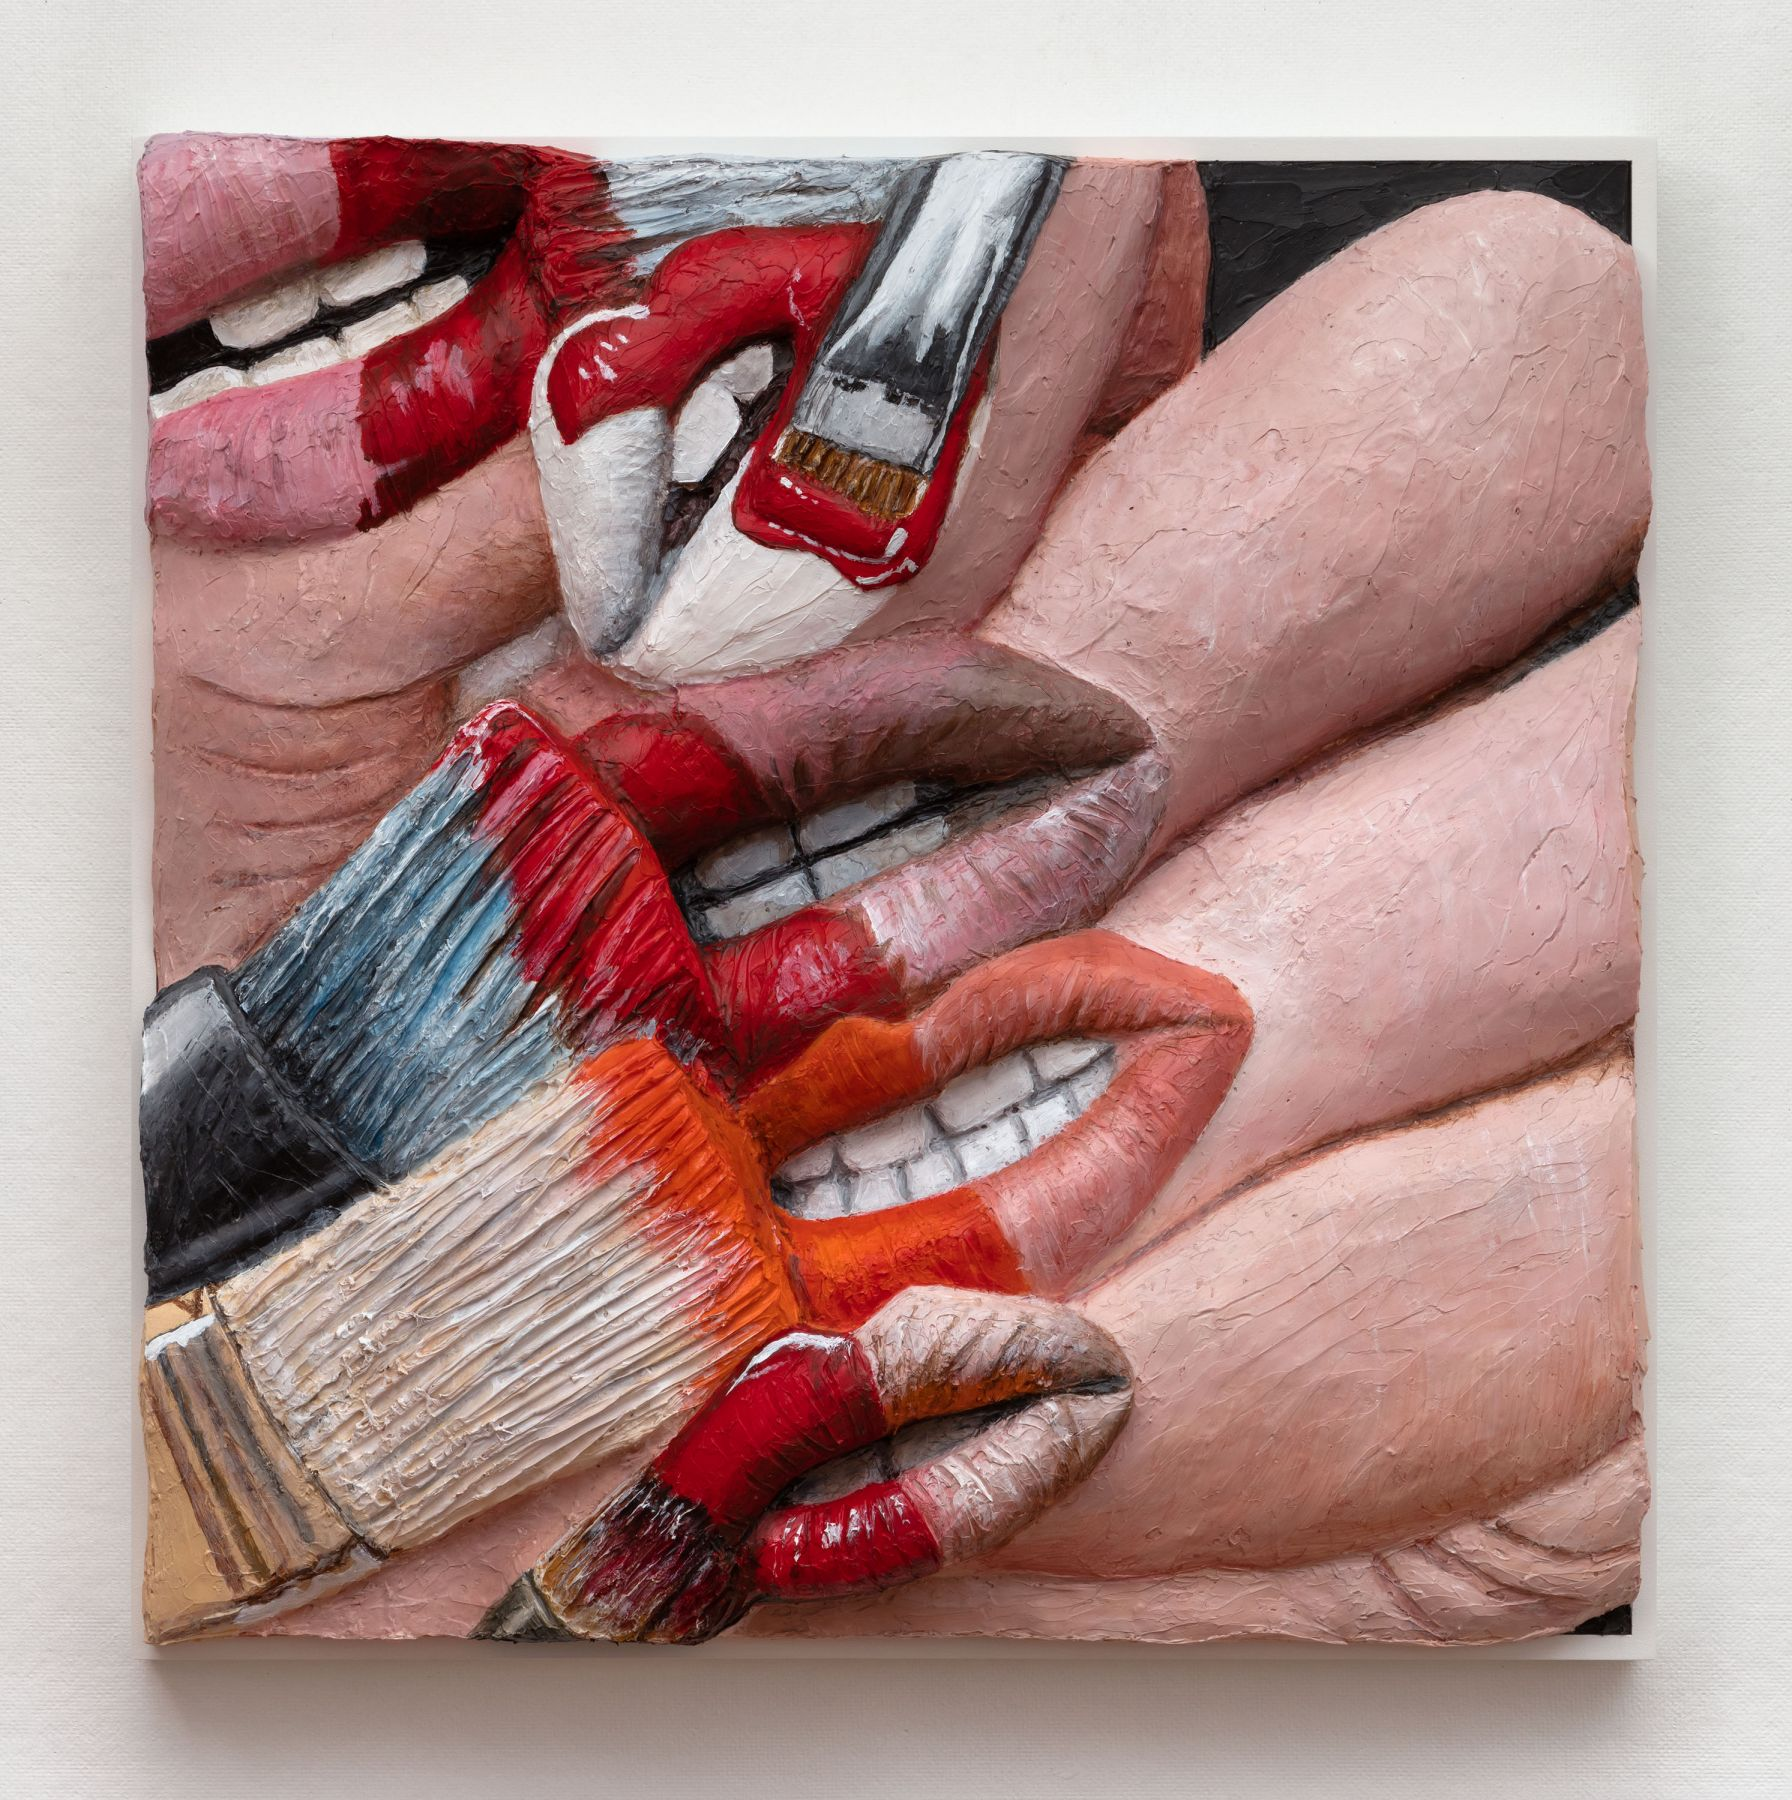 Extruded painting of paint brushes on nails which are lipsby Gina Beavers